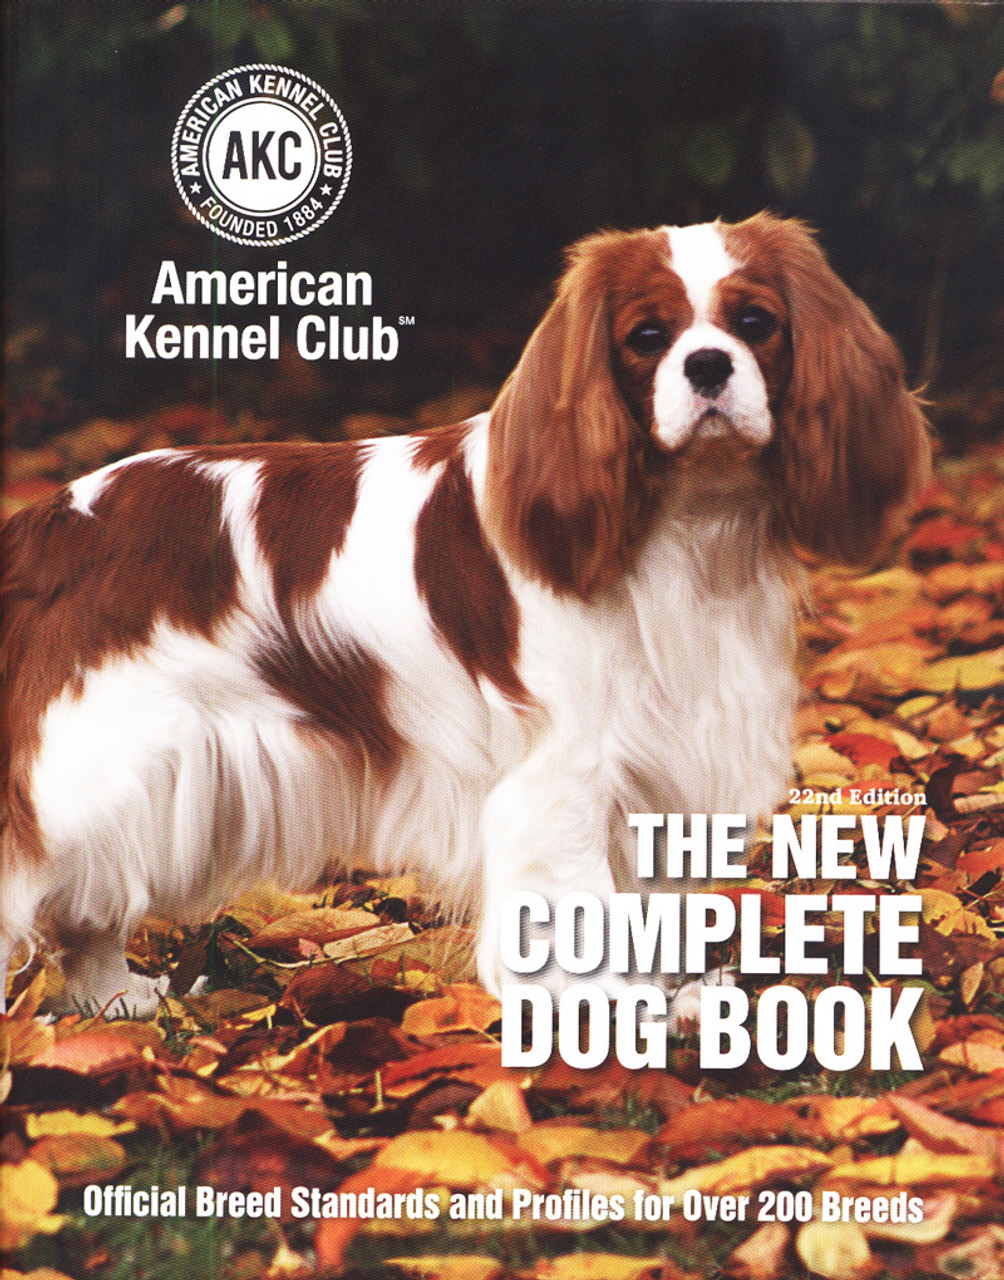 AKC The New Complete Dog Book, 22nd Edition